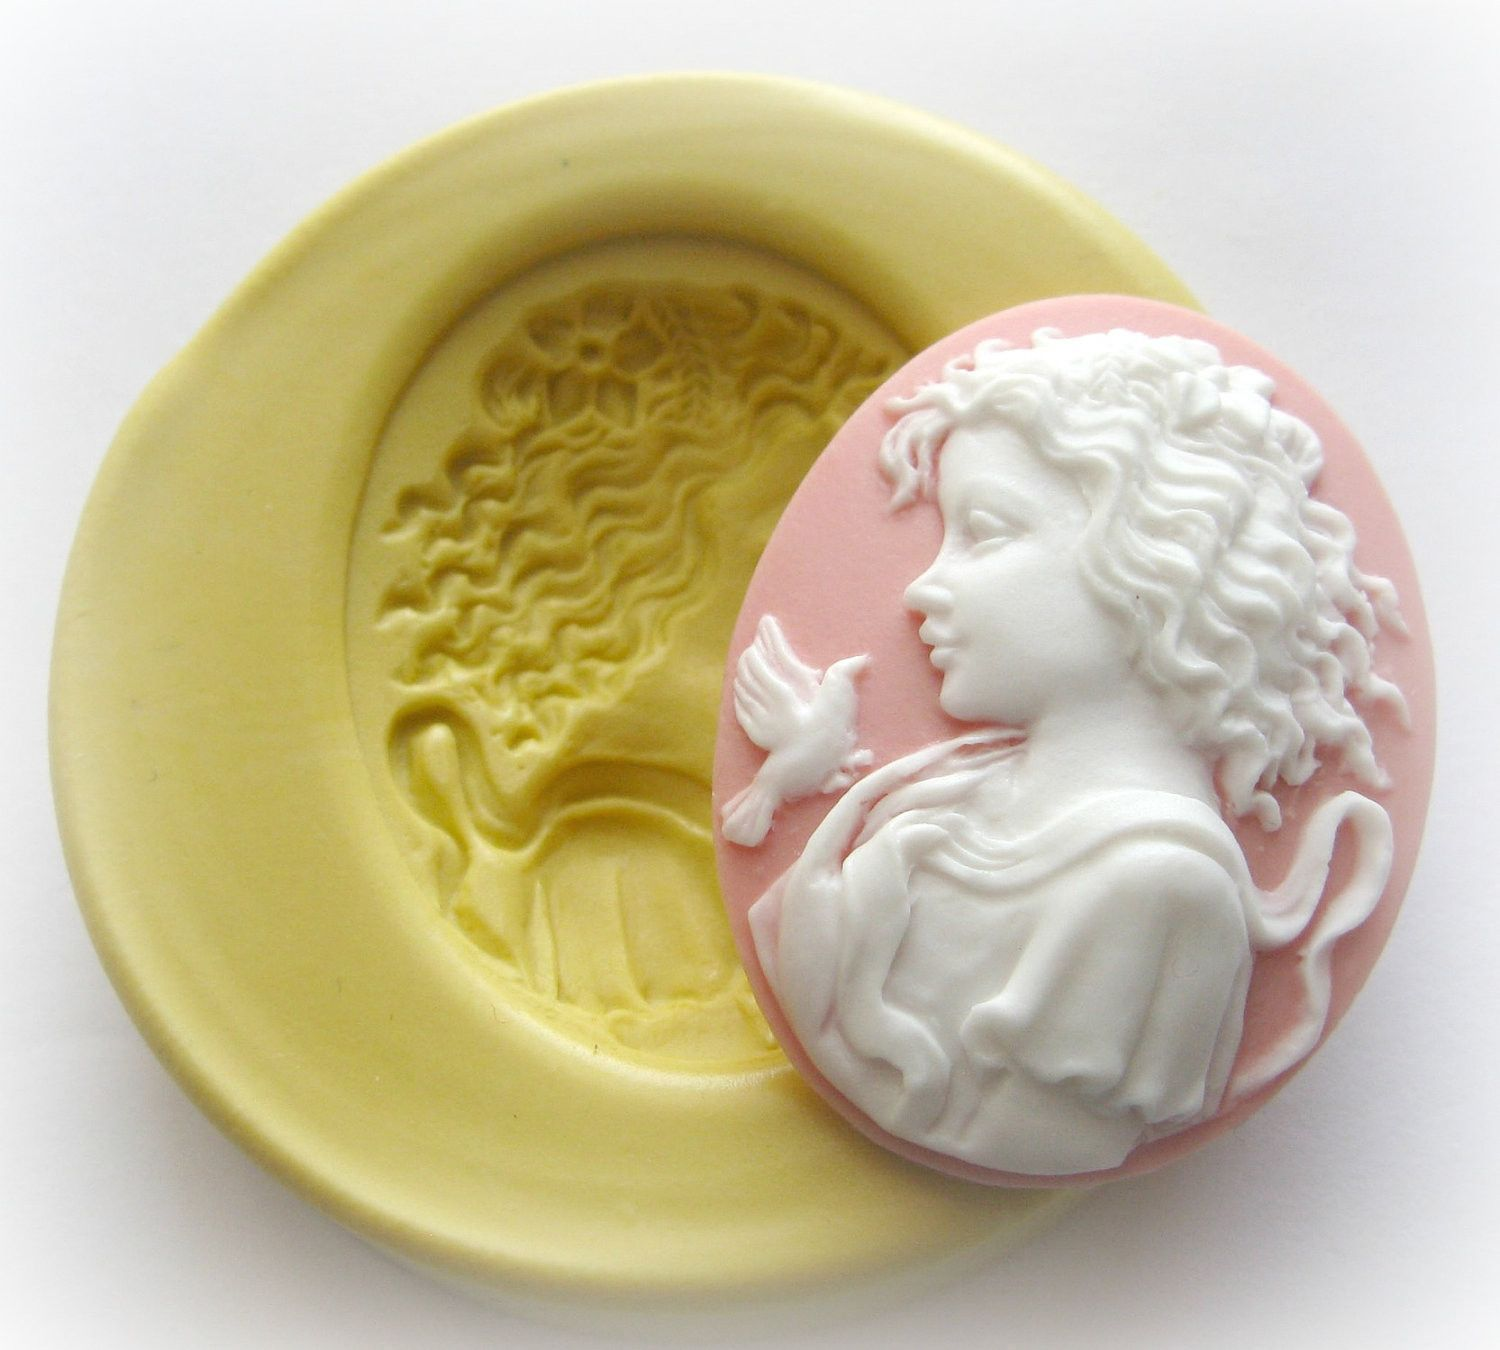 Victorian lady cameo mold clay resin soap mould victorian soap